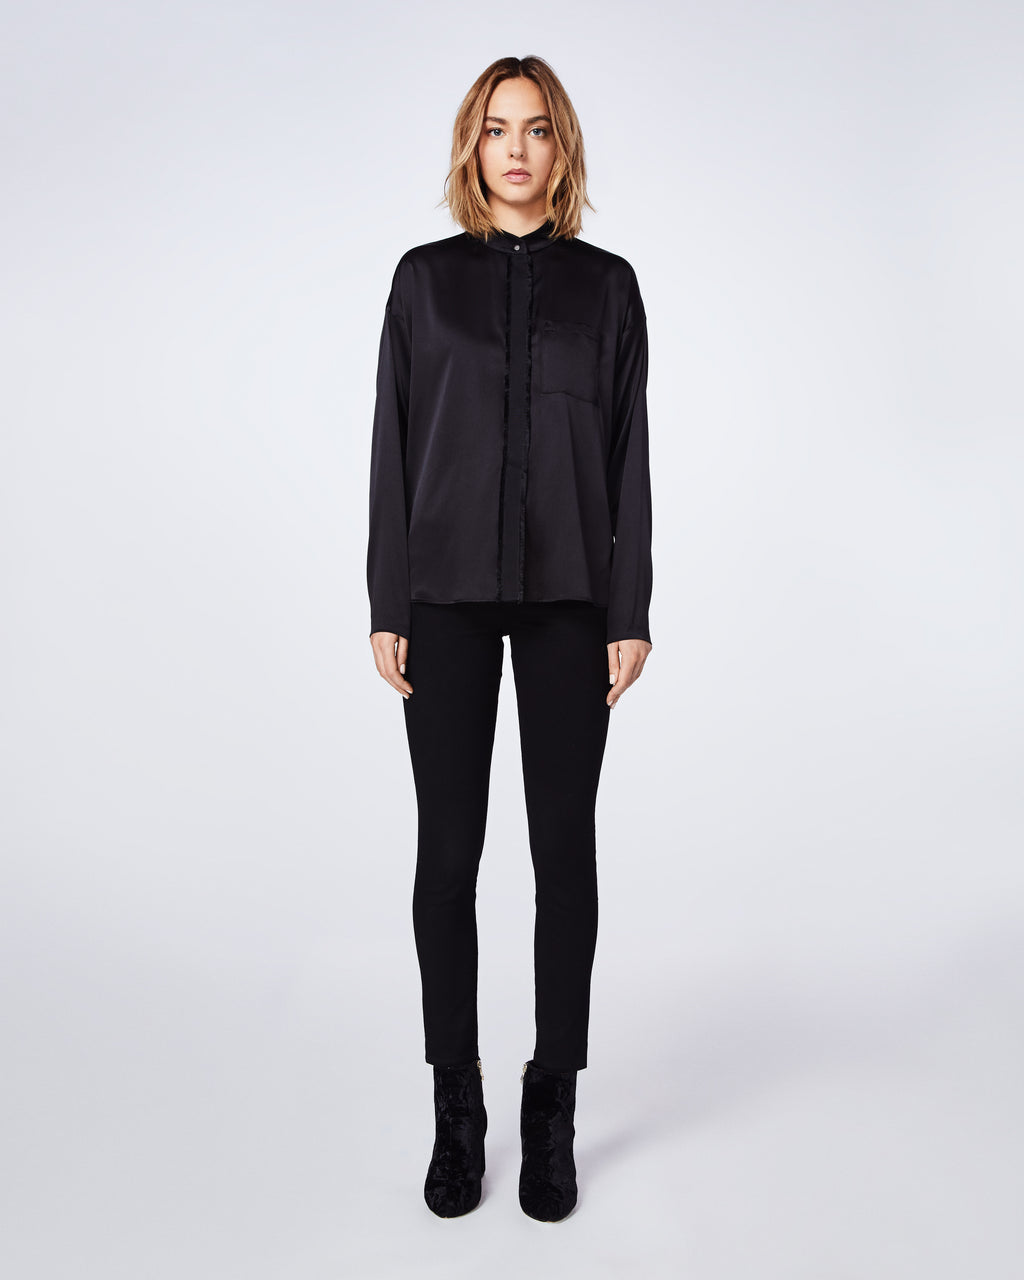 BF10350 - Stretch Charmeuse Botton Down Top - tops - blouses - This long-sleeve button down charmeuse top is a classic. Whether you wear it with jeans or dress it up with black leather pant, this style is both cool and easy to wear